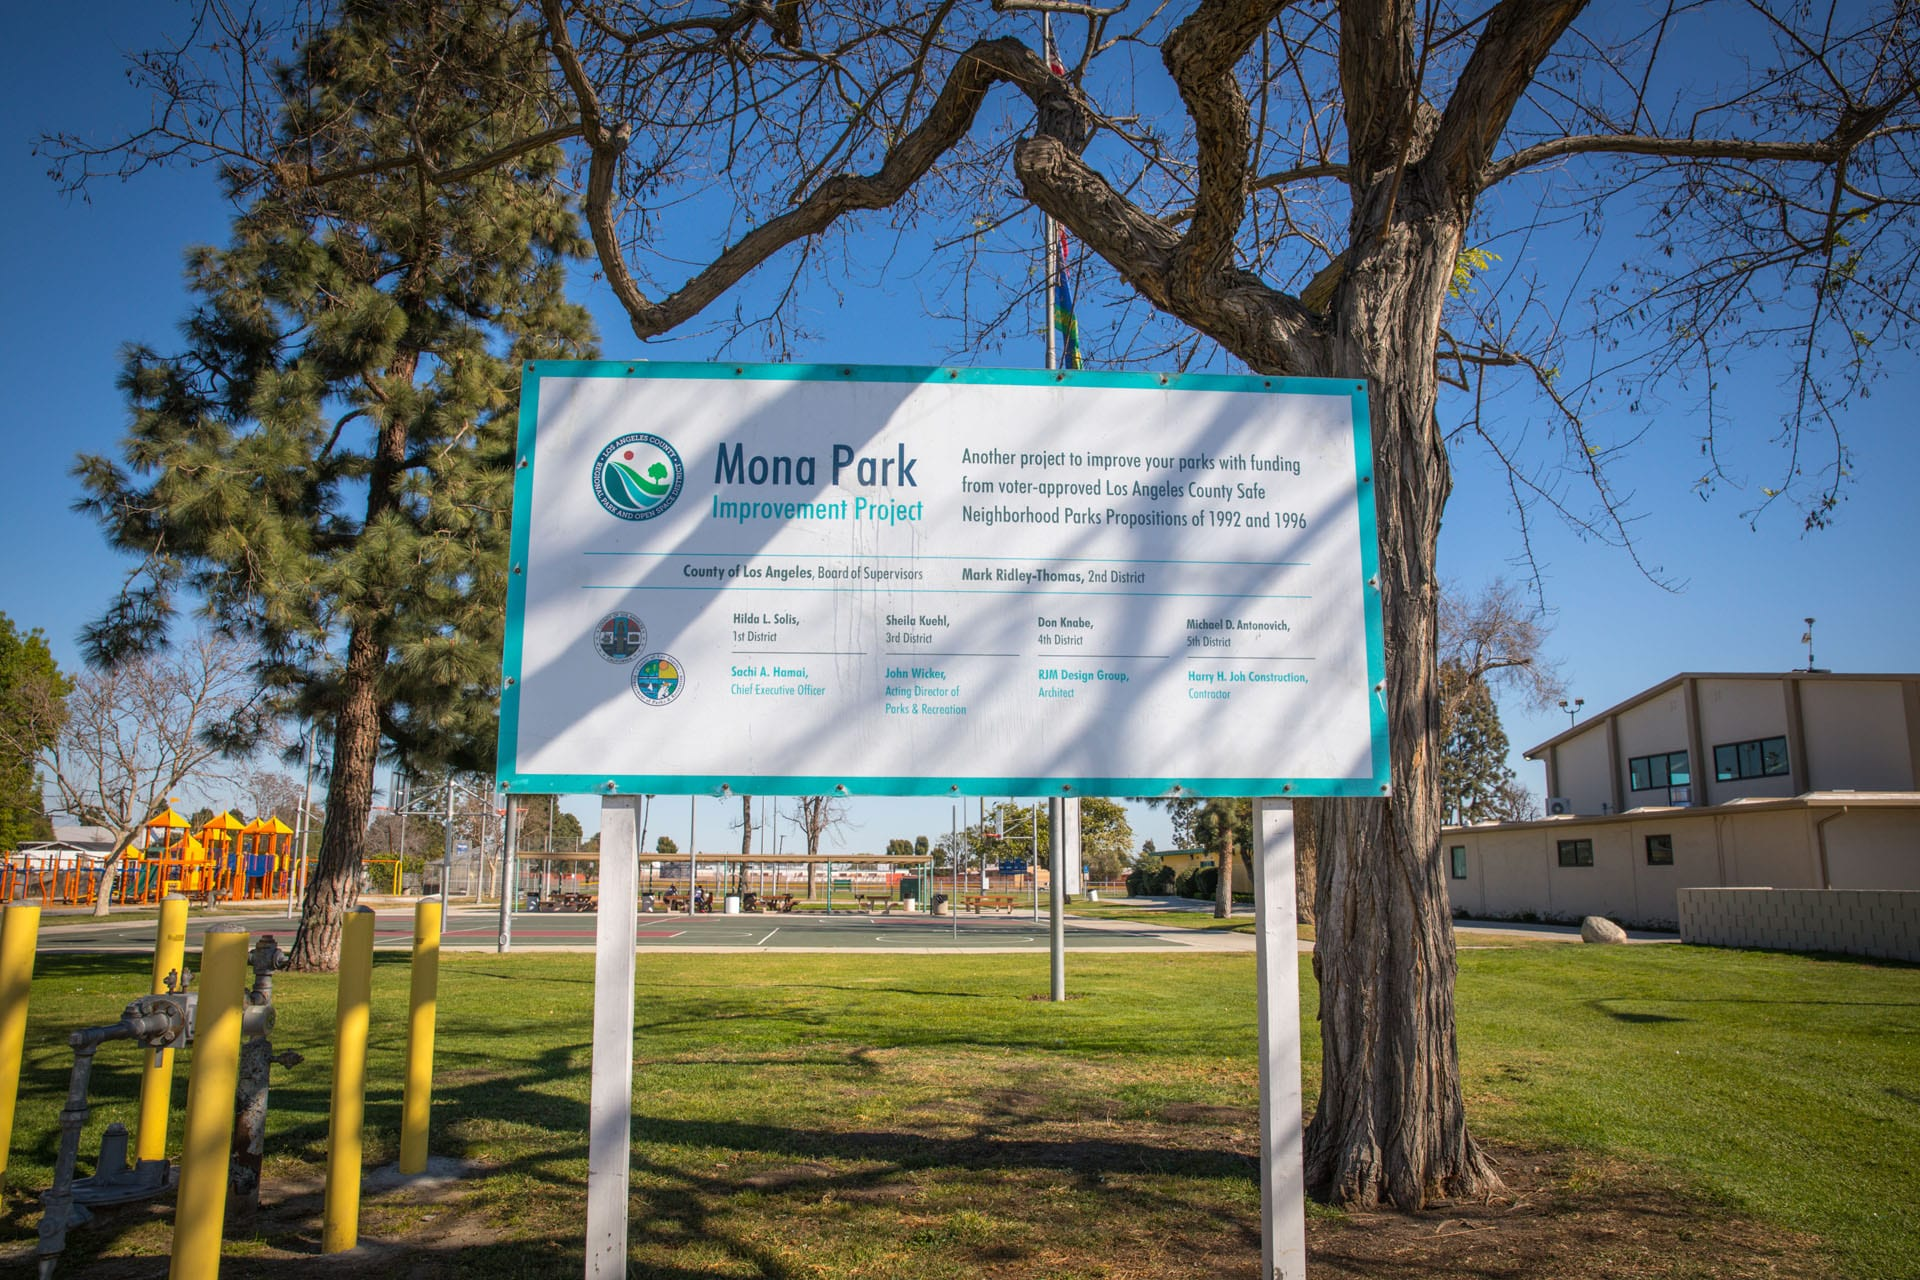 Mona Park Improvement Project sign